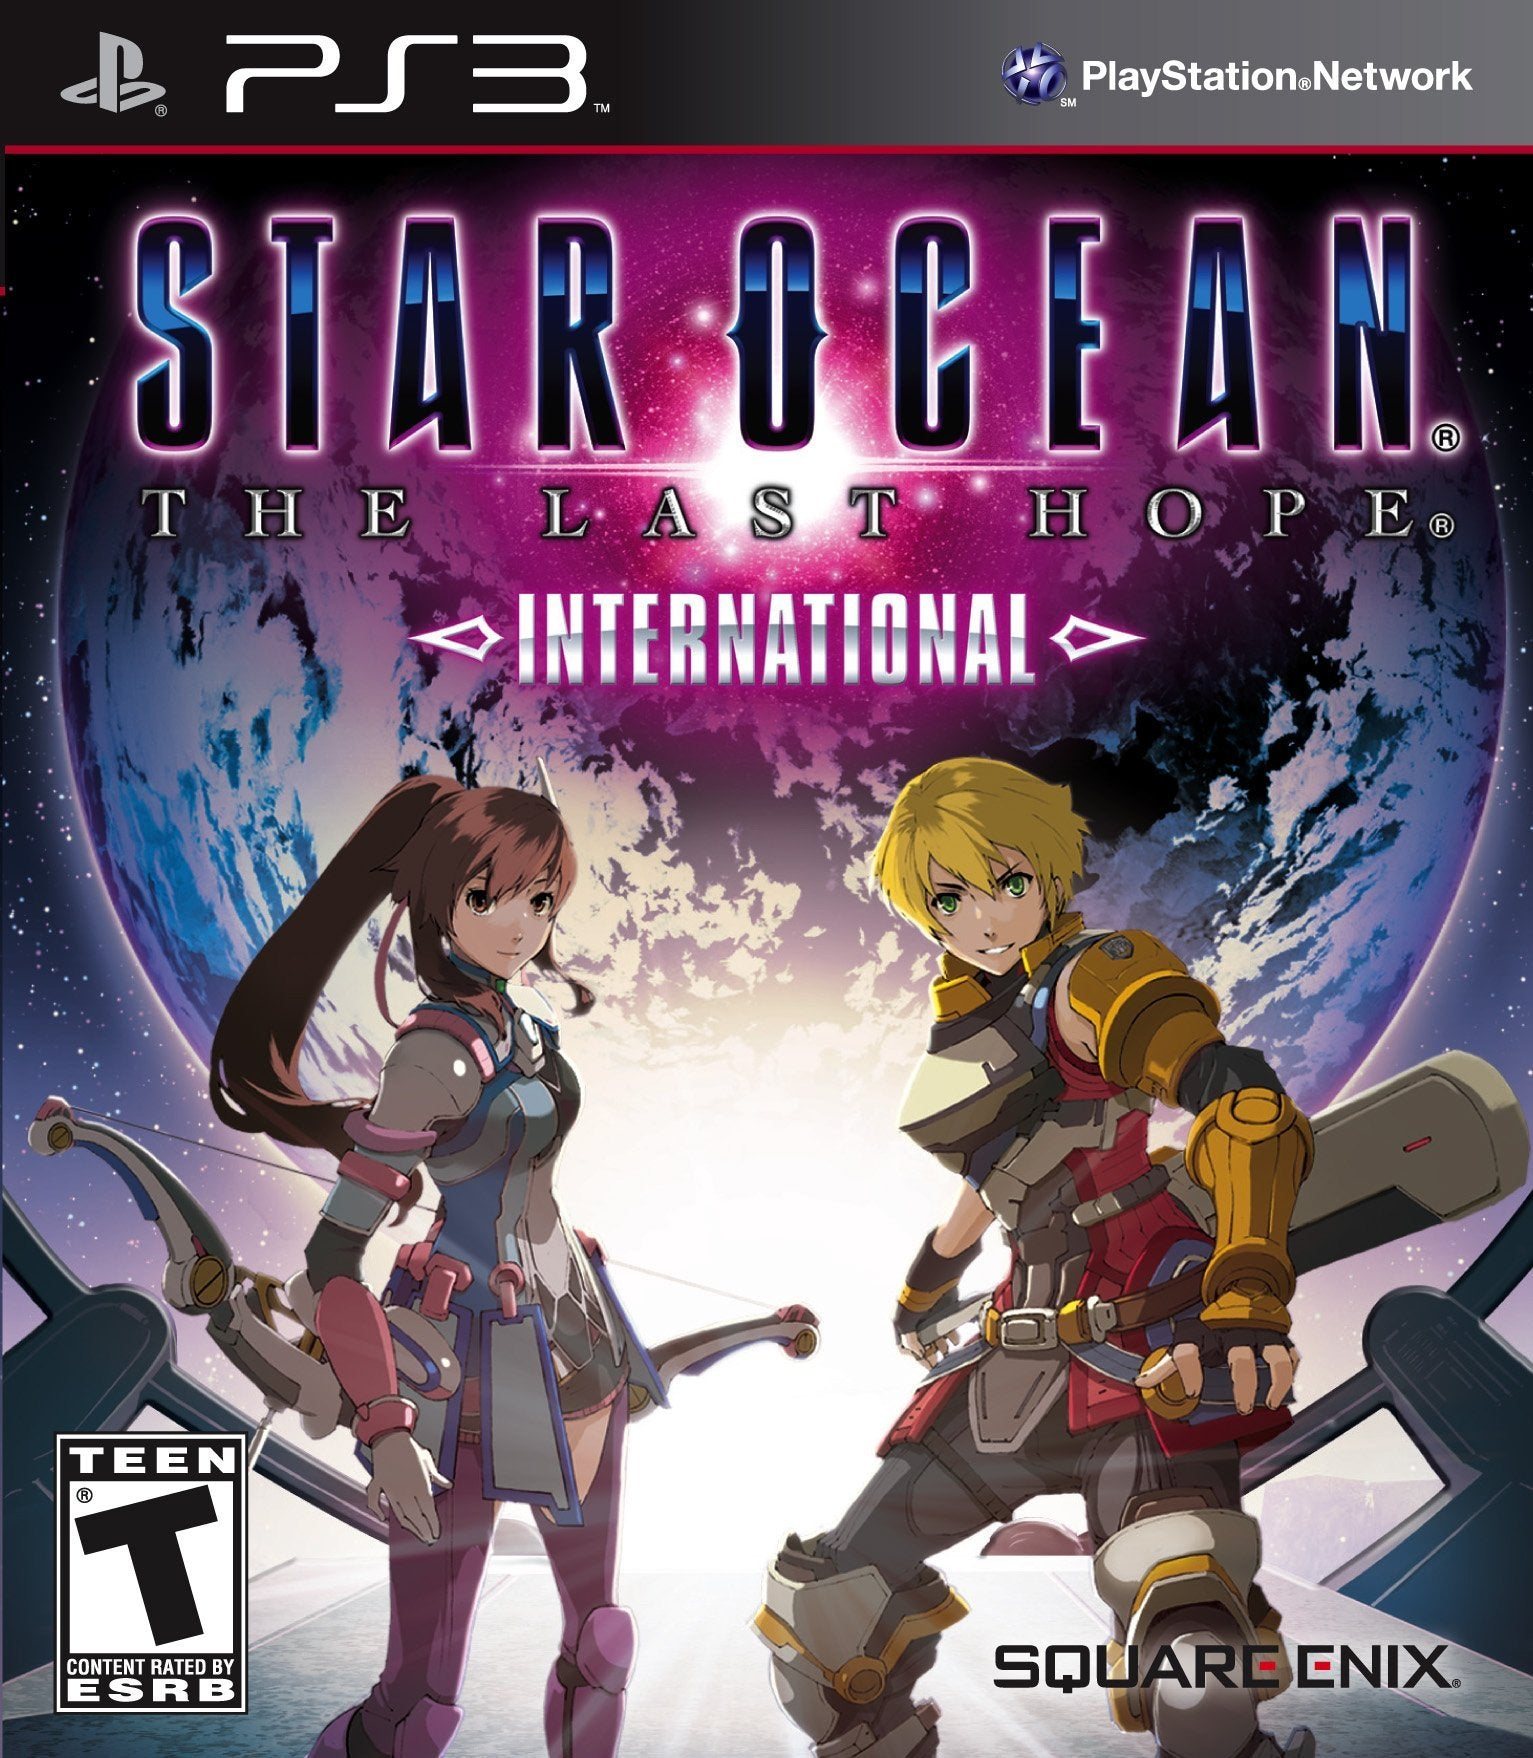 Star Ocean: The Last Hope International (Playstation 3) | SKYFOX GAMES